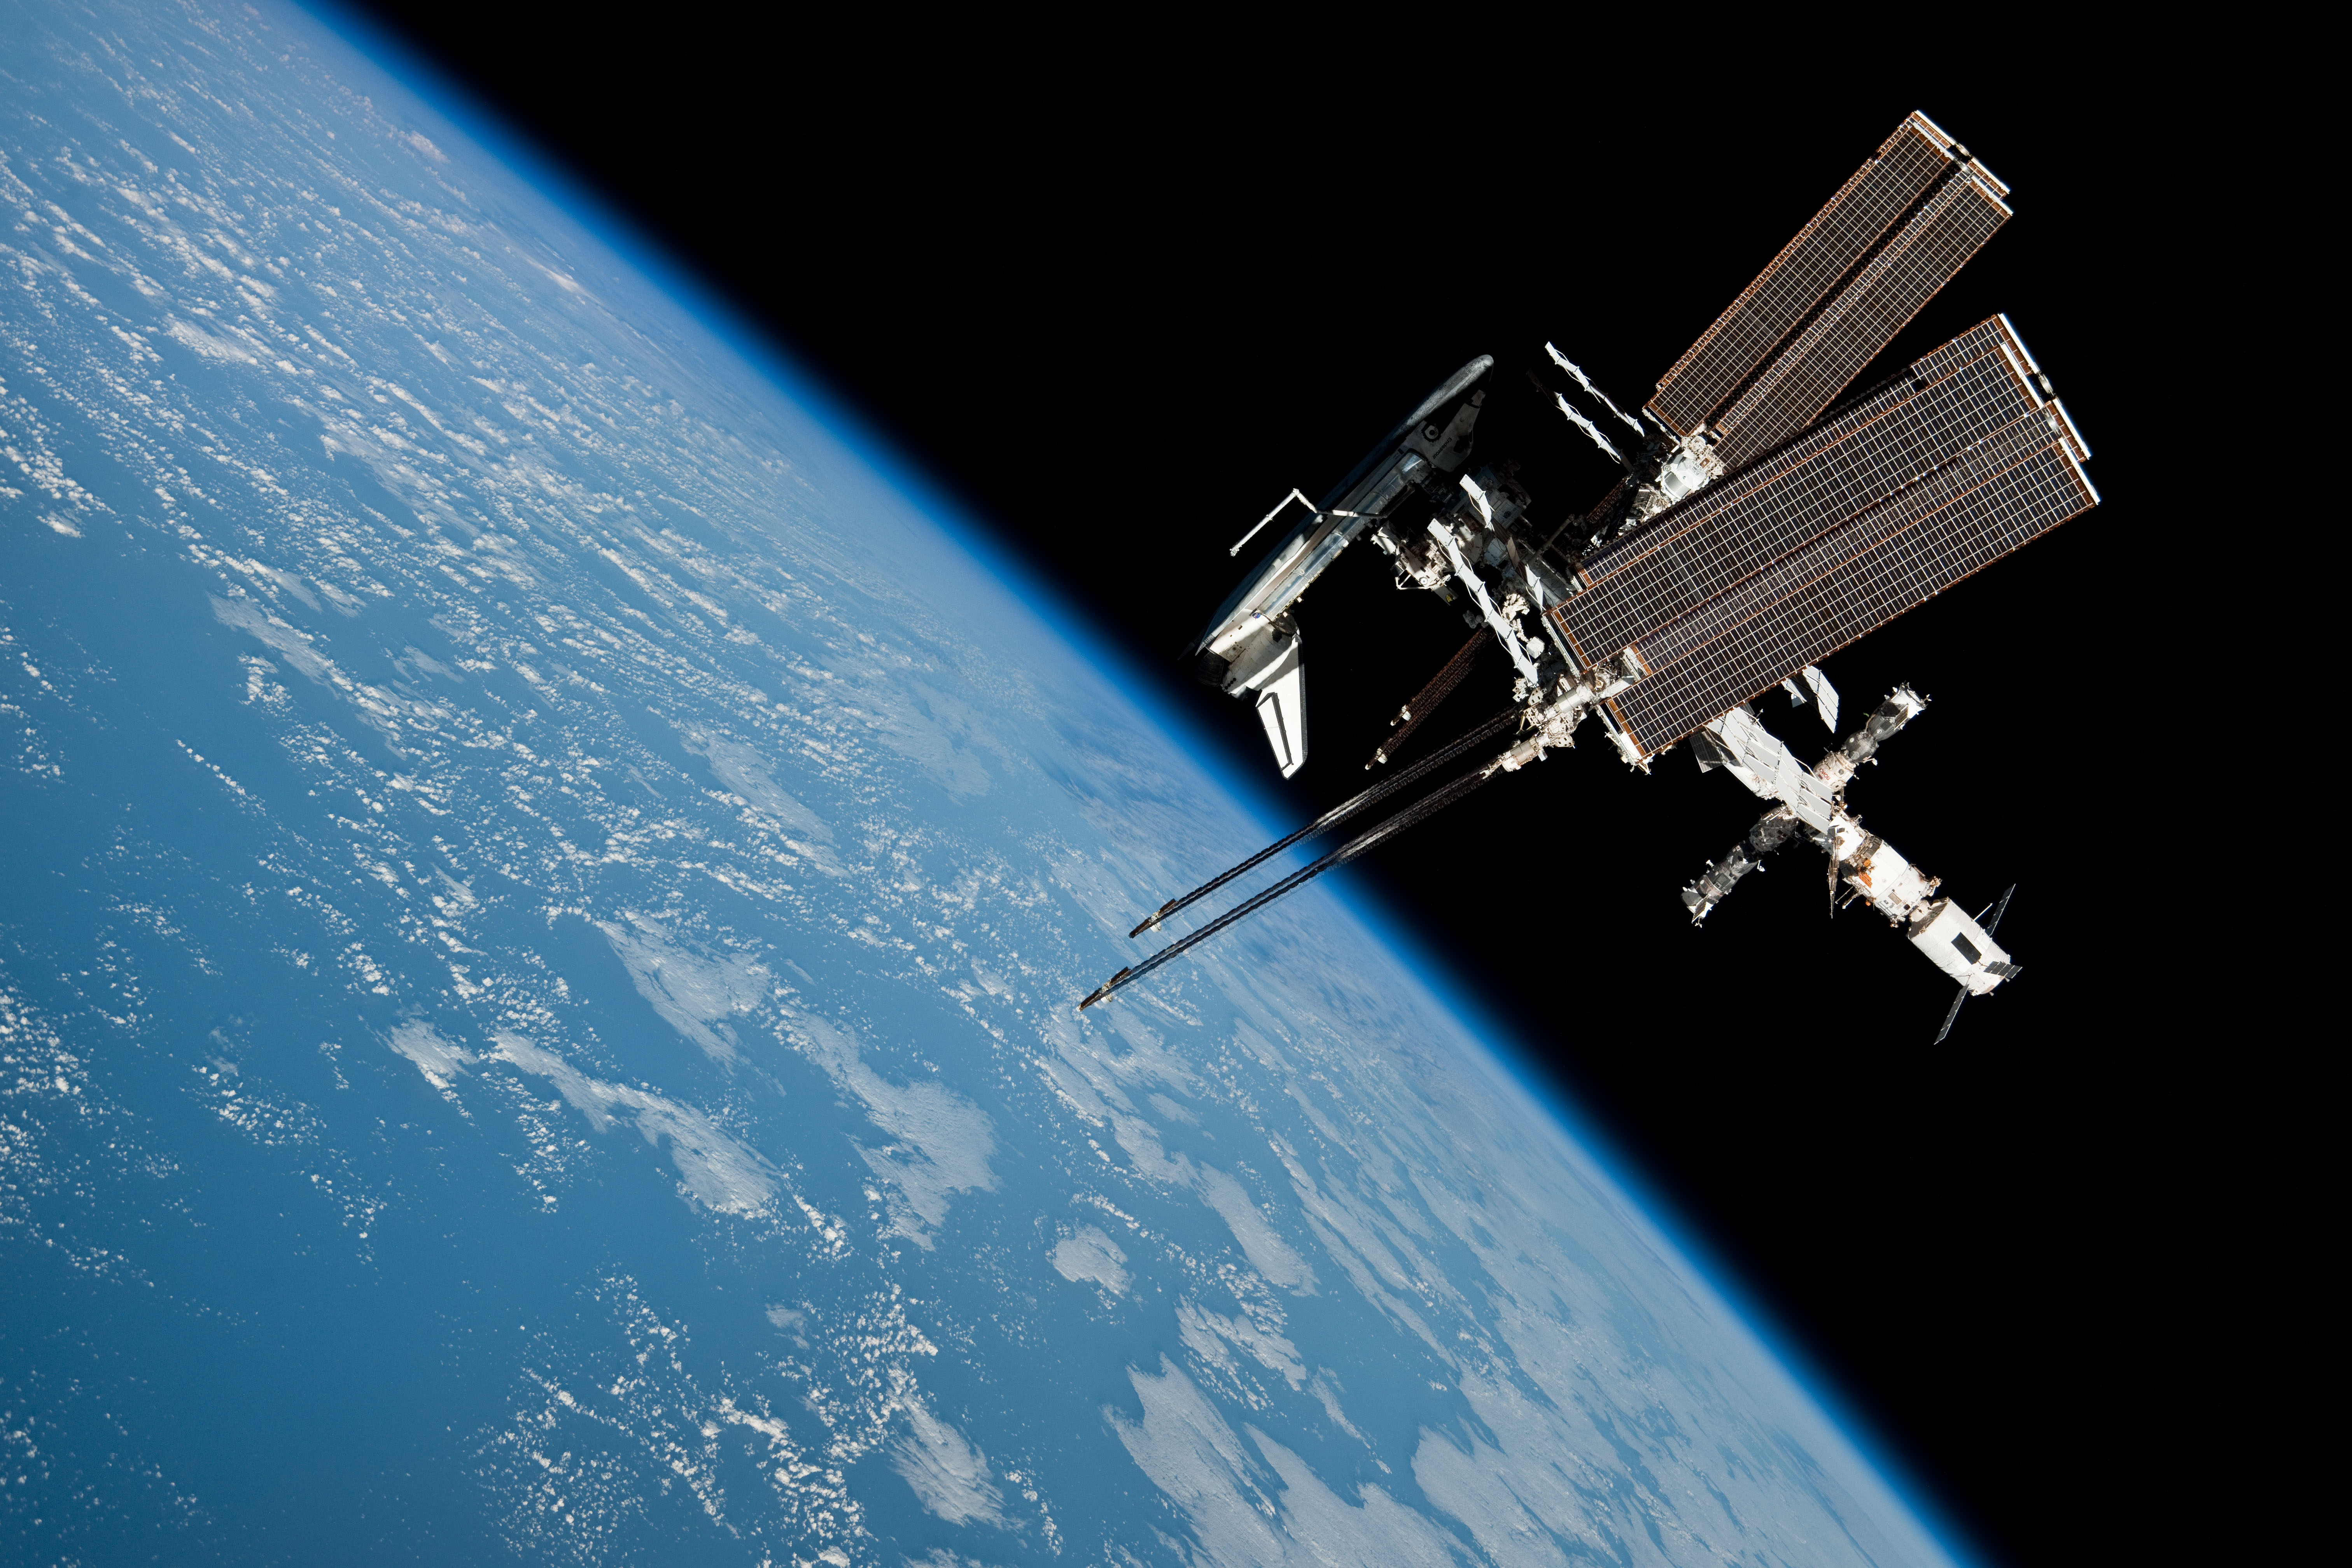 ISS_and_Endeavour_seen_from_the_Soyuz_TMA-20_spacecraft_30.jpg